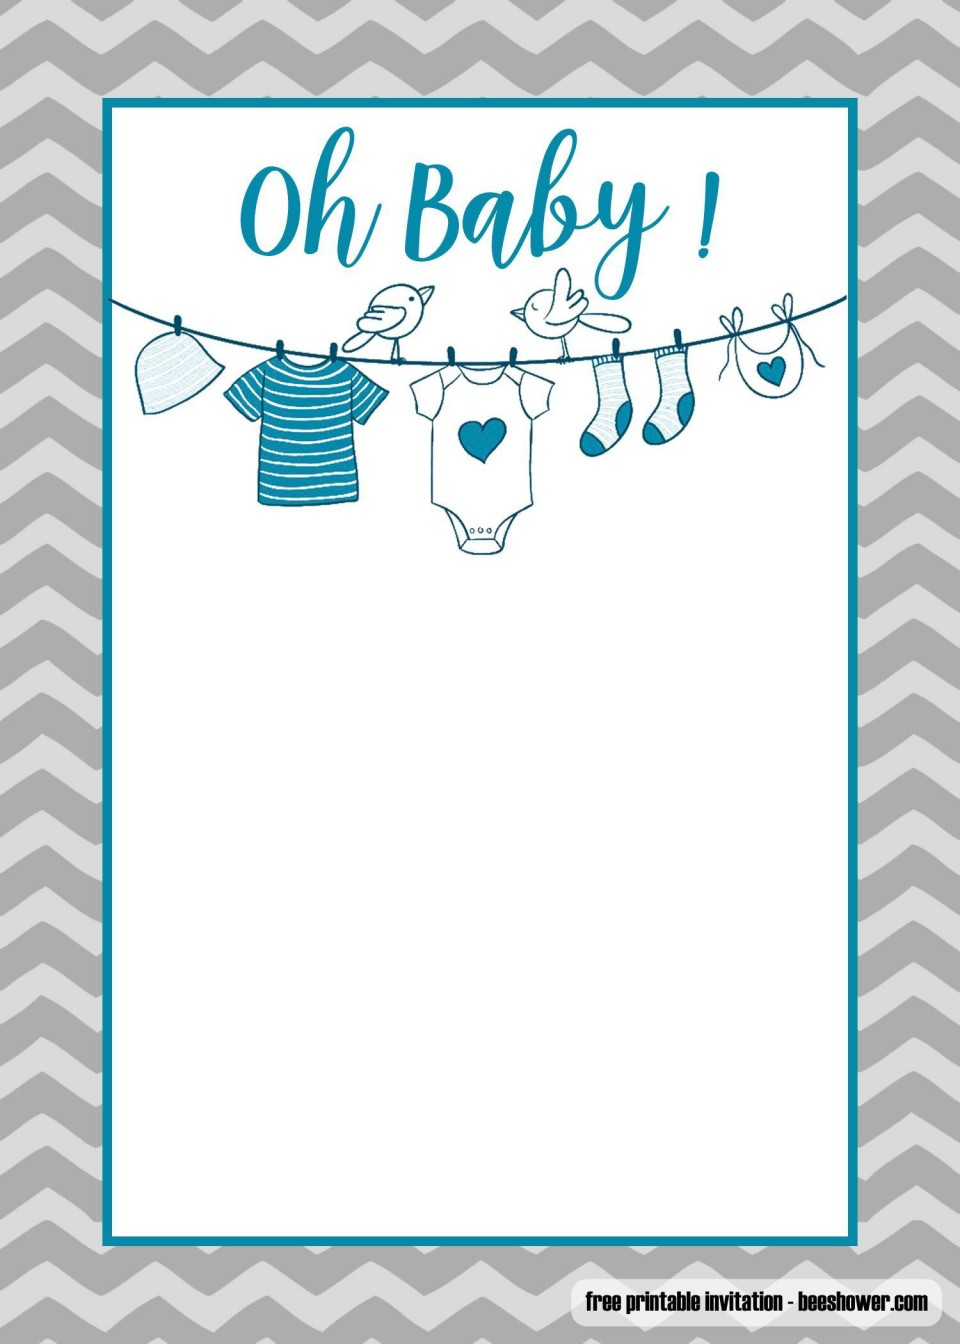 007 Sensational Baby Shower Invitation Card Template Free Download Image  Indian960